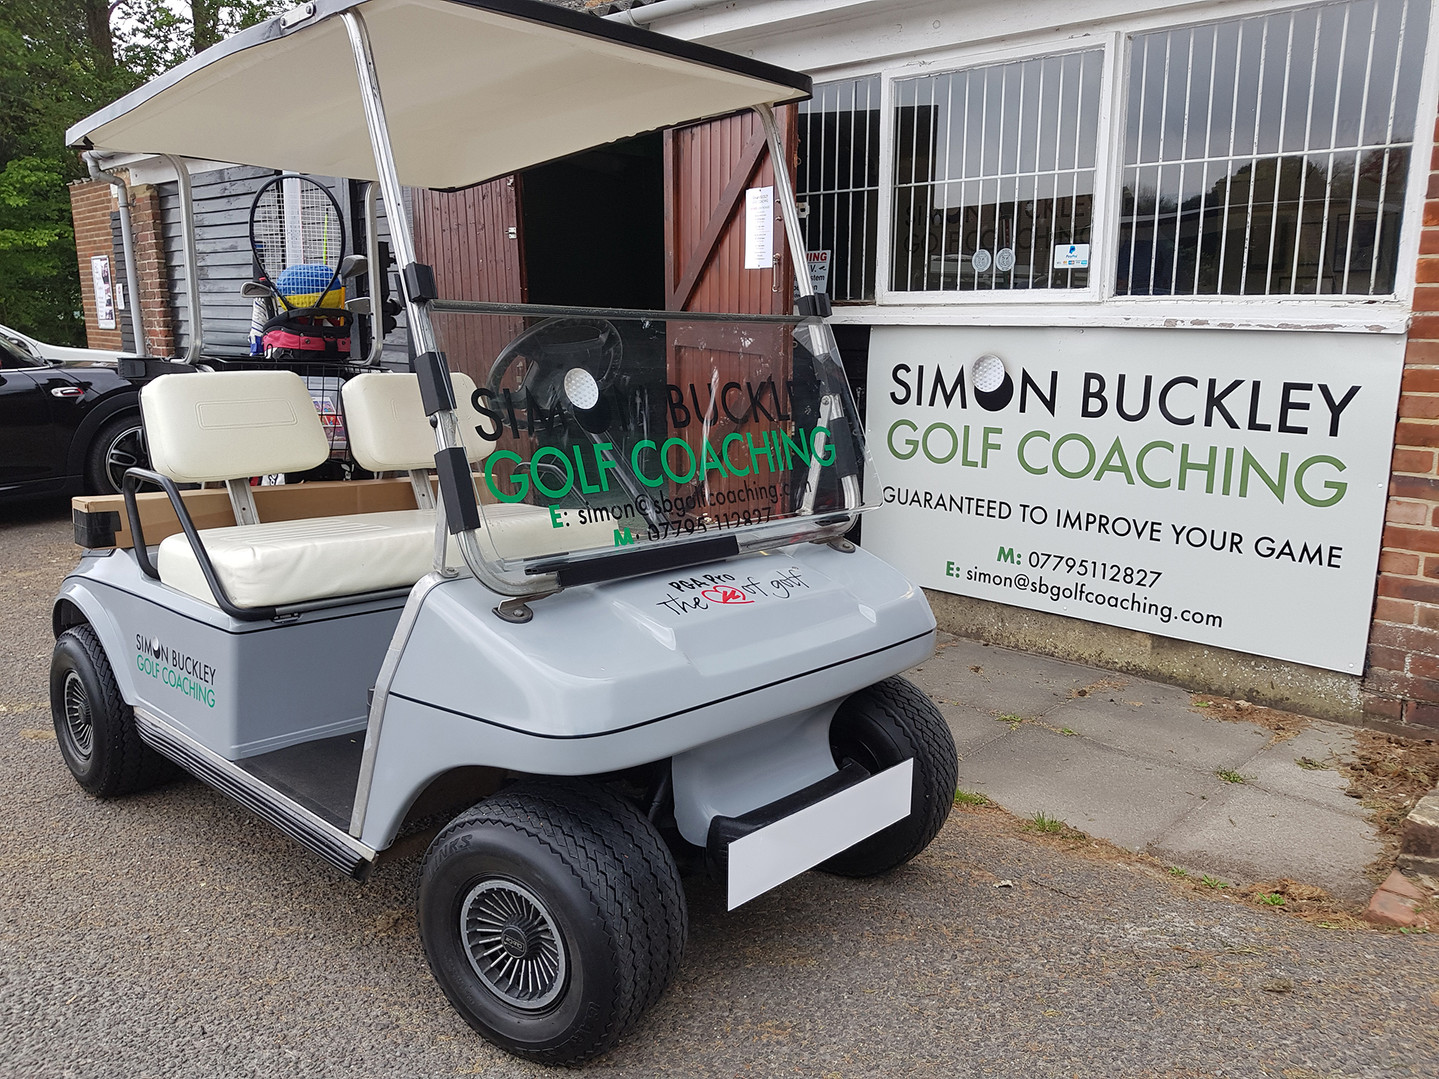 Simon Buckley Golf Buggy